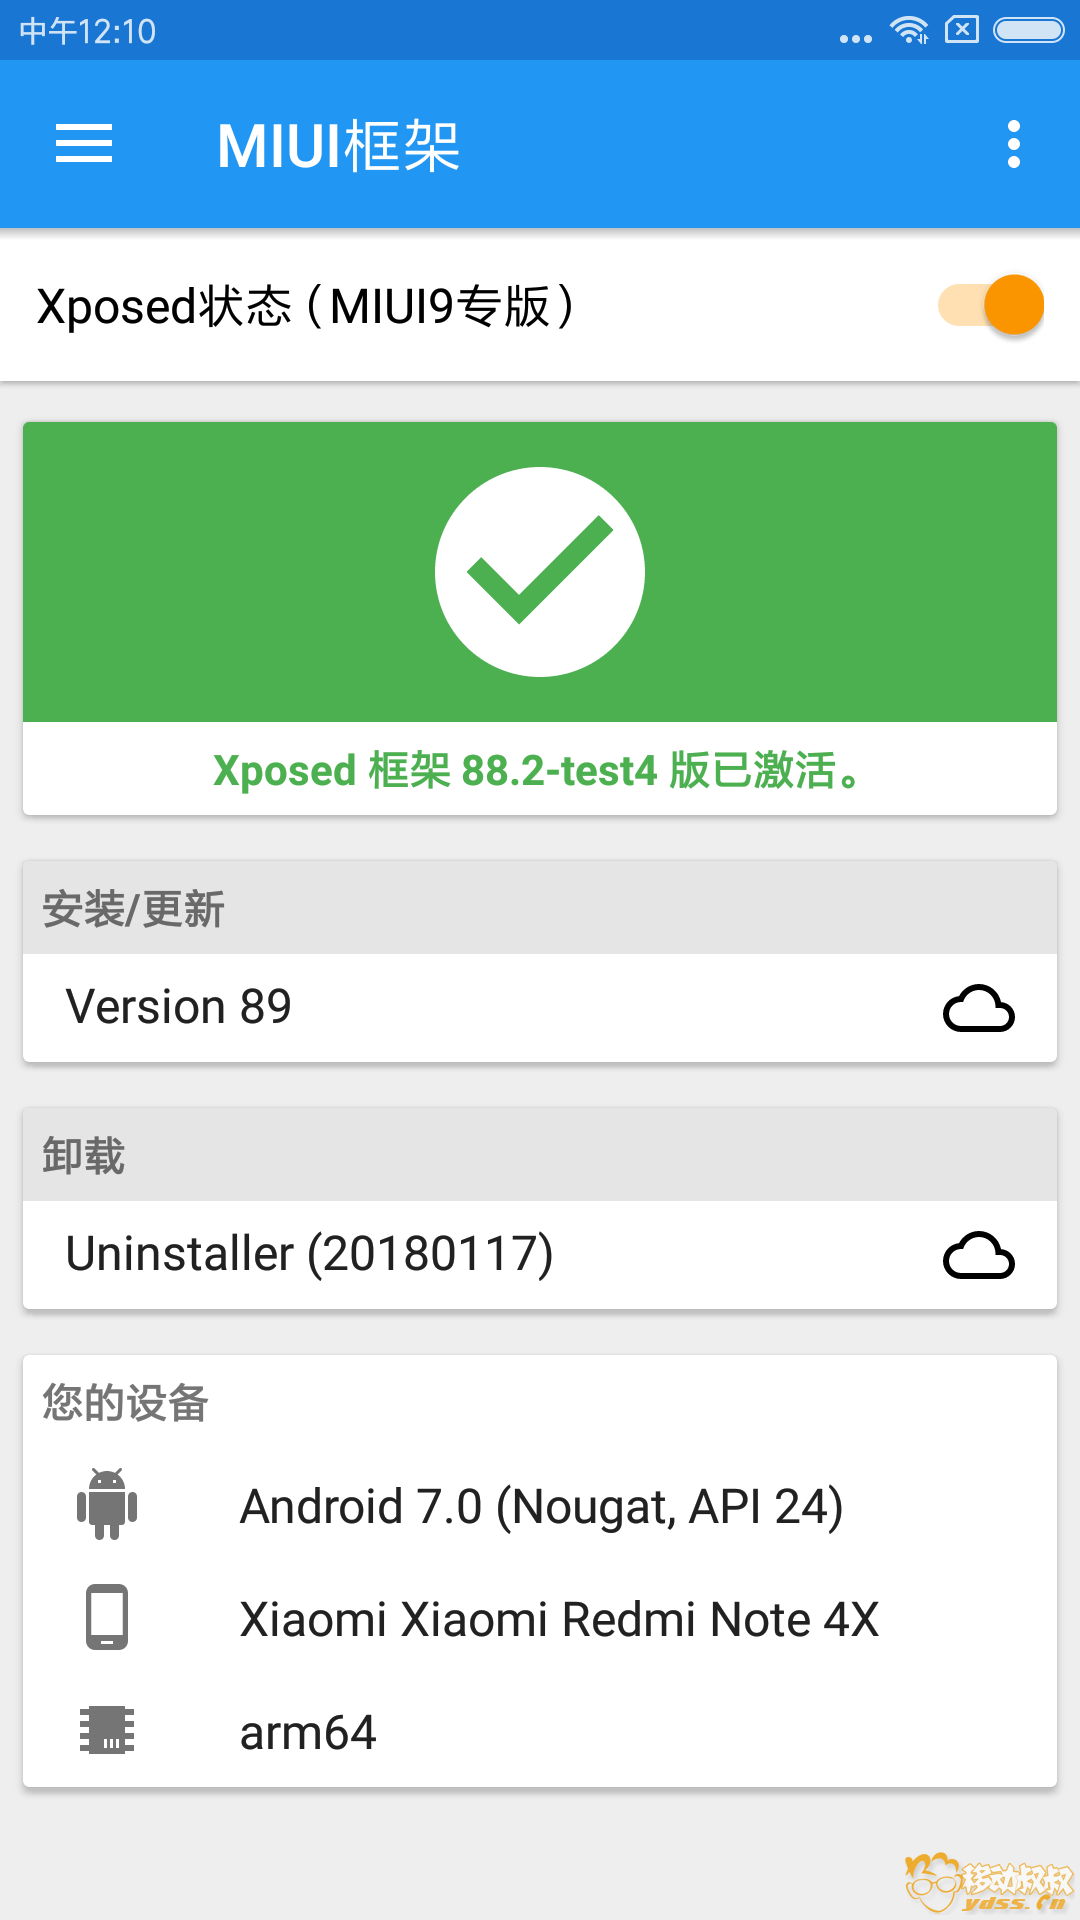 Screenshot_2018-04-14-12-10-18-405_de.robv.android.xposed.installer.png